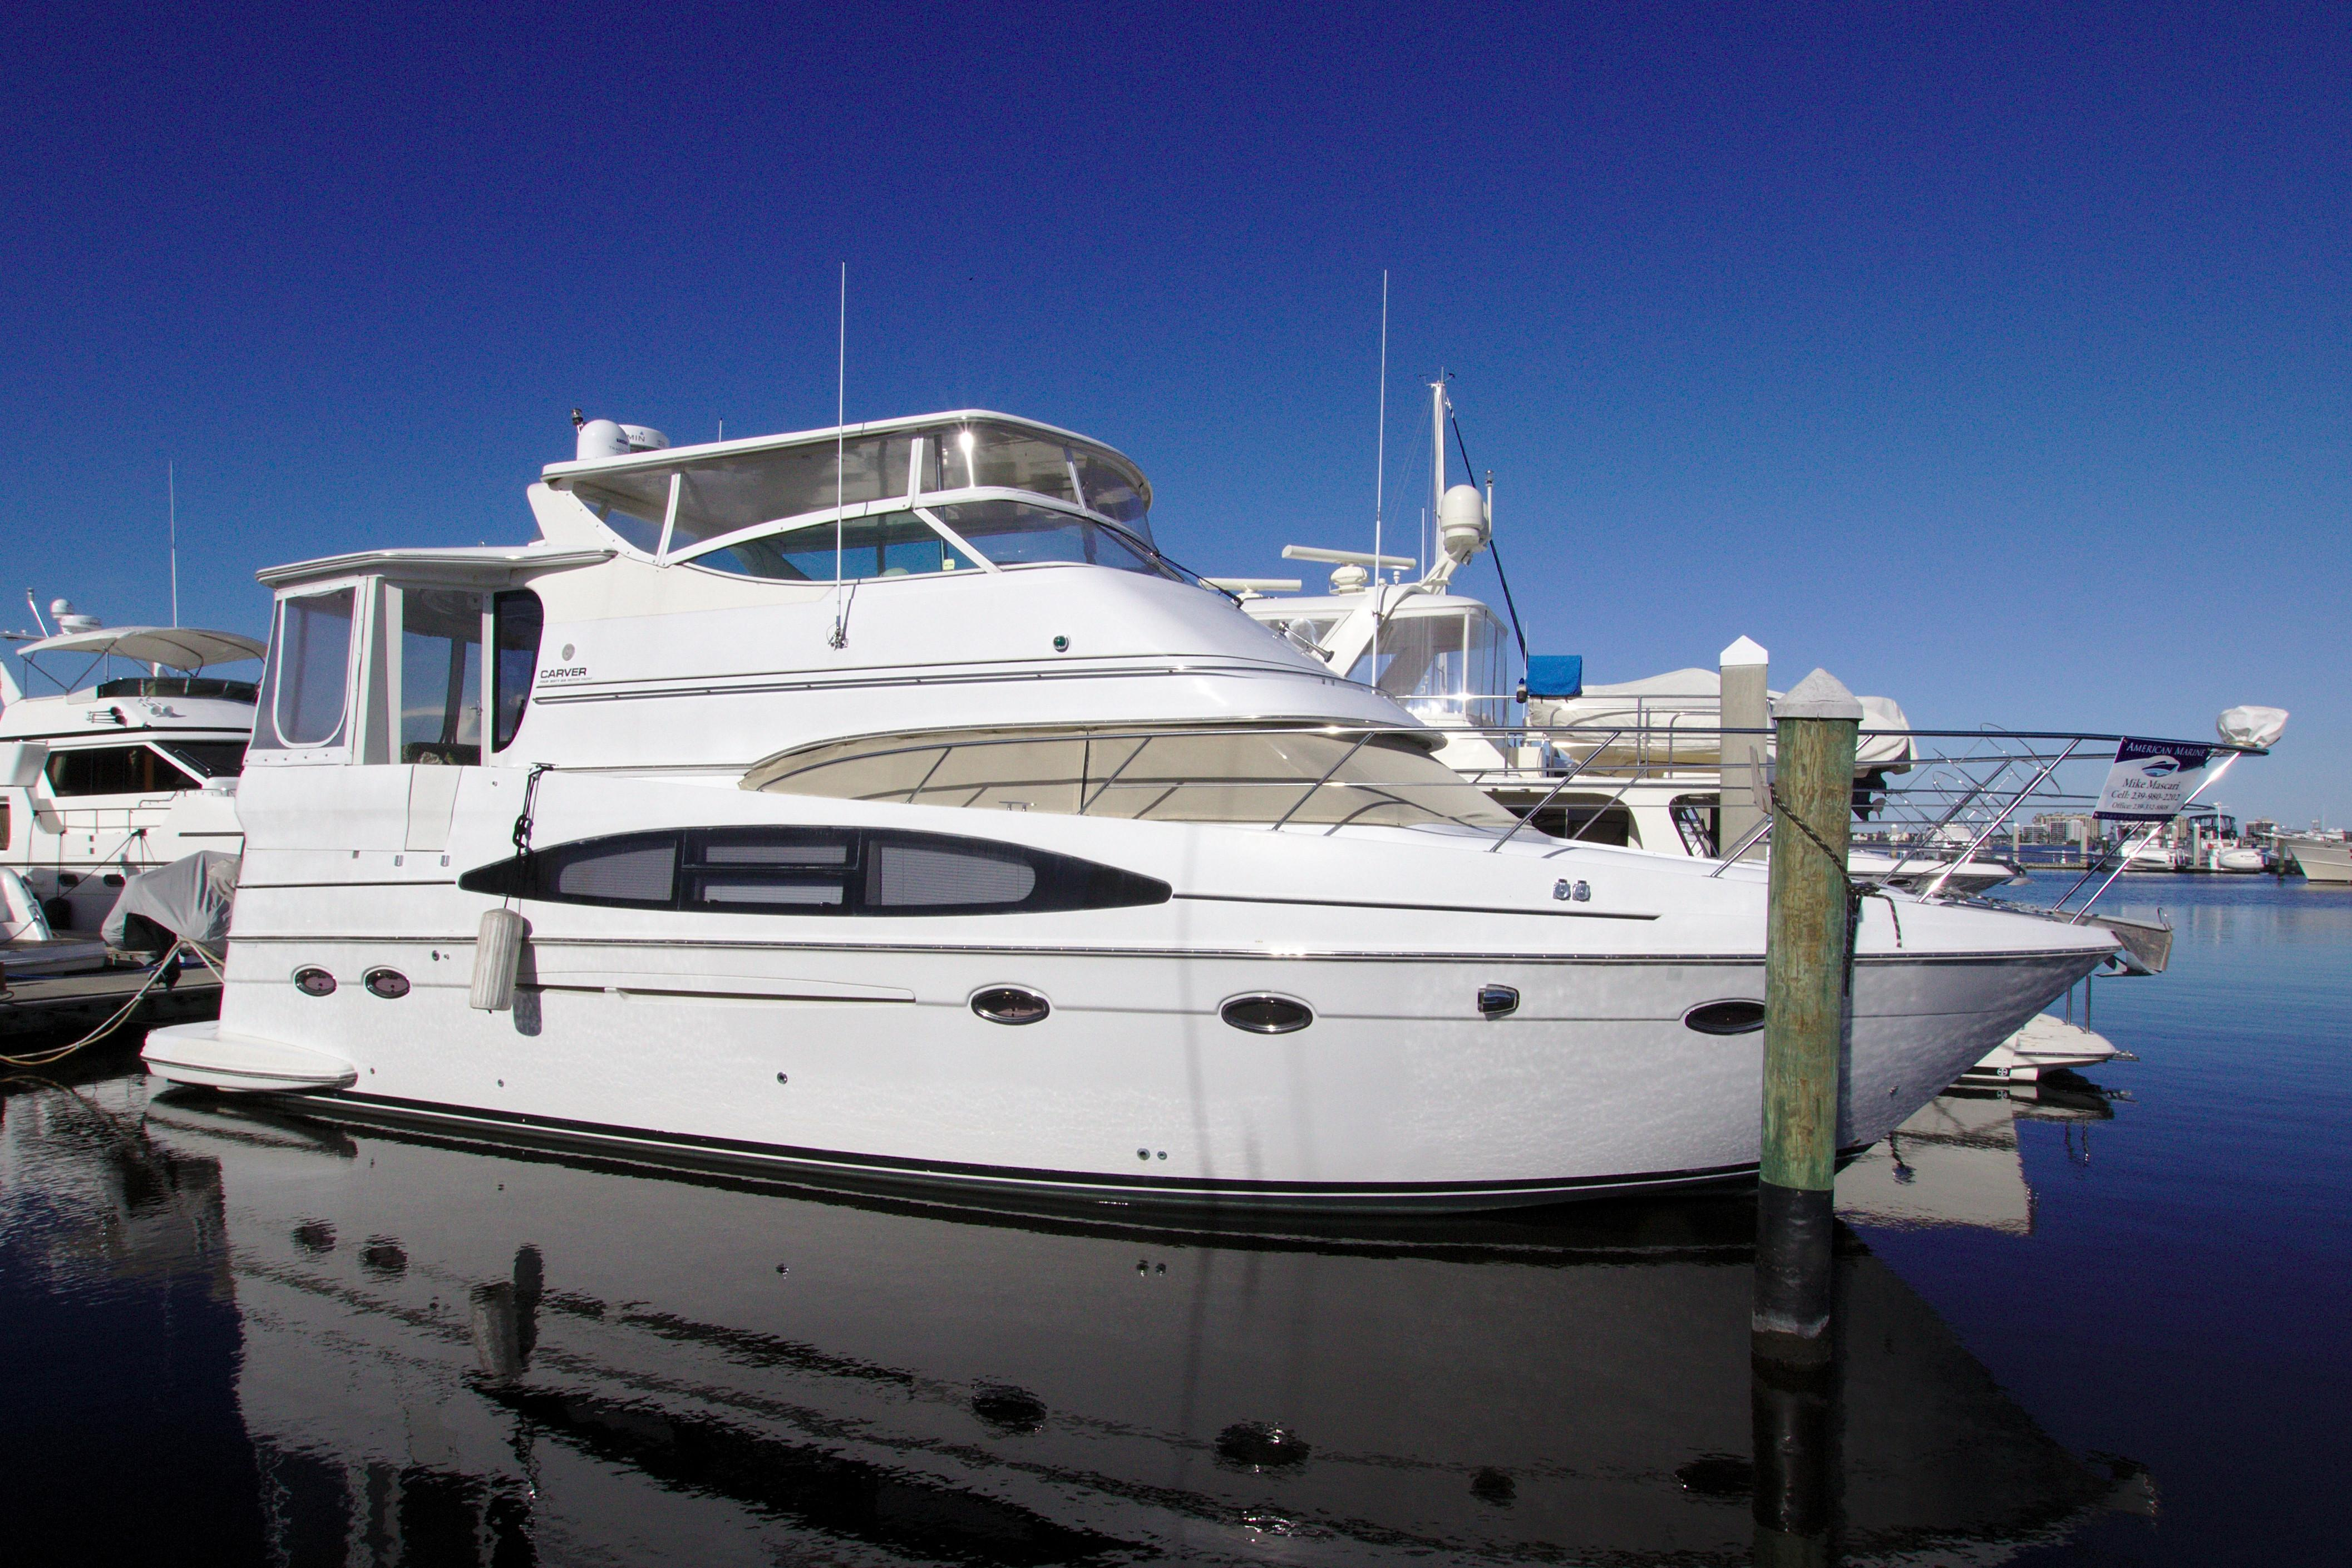 Carver 2001 466 Motor Yacht 46 Yacht for Sale in US